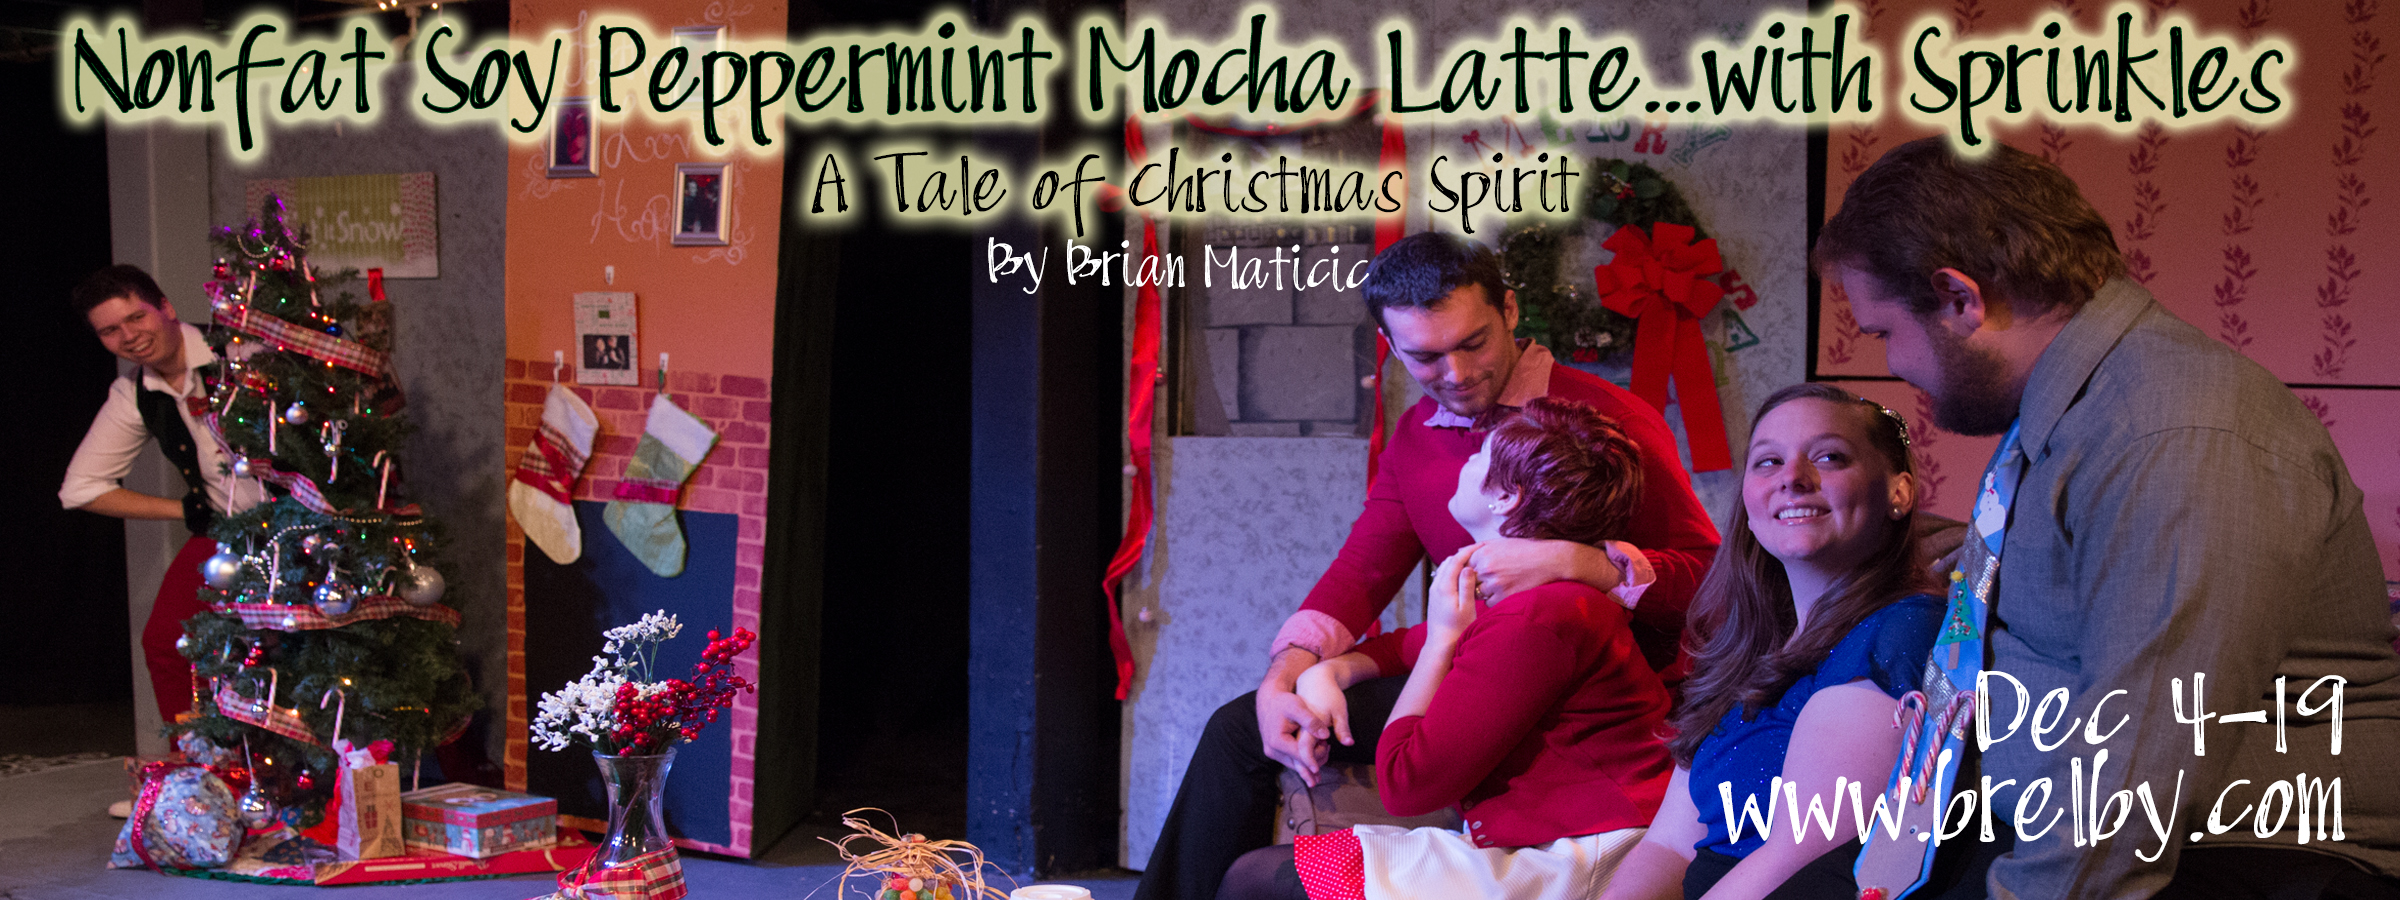 The Spirit Of Christmas Cast.Brelby With Sprinkles Never Ending Christmas Cheer Brelby